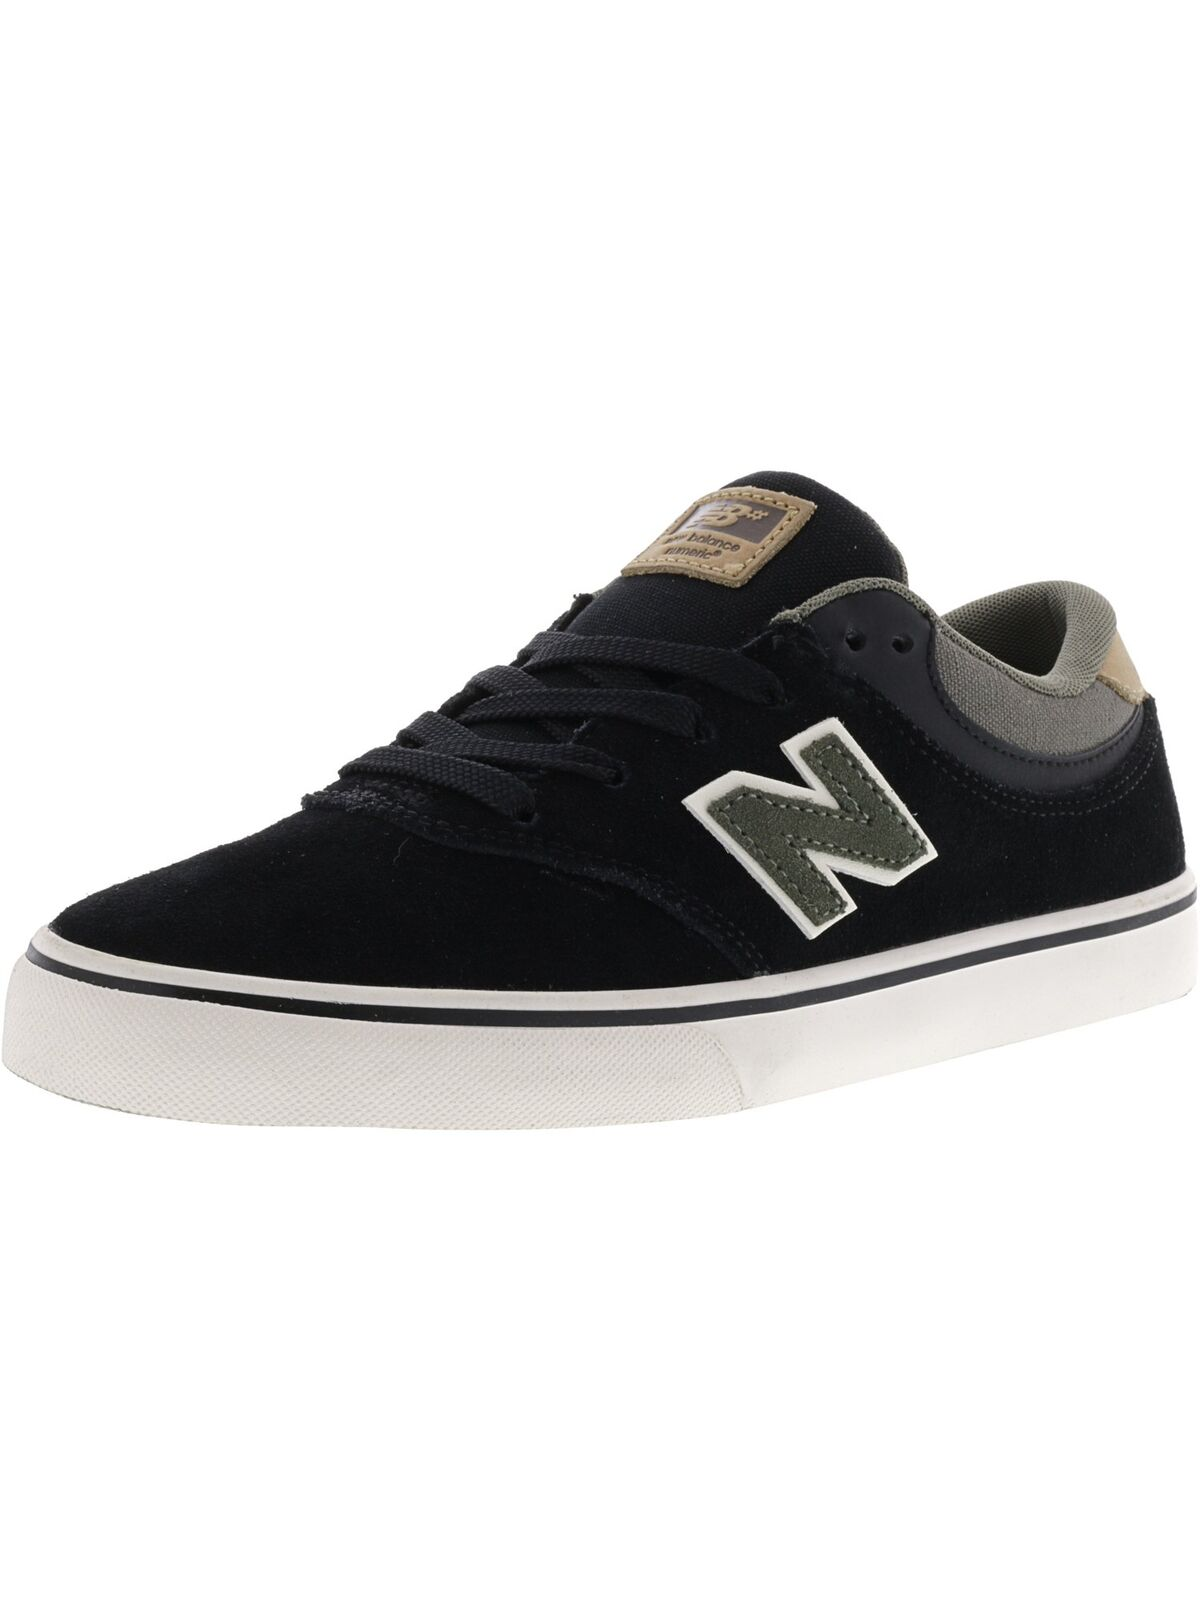 New Balance Men's Nm254 Ankle-High Leather Fashion Sneaker